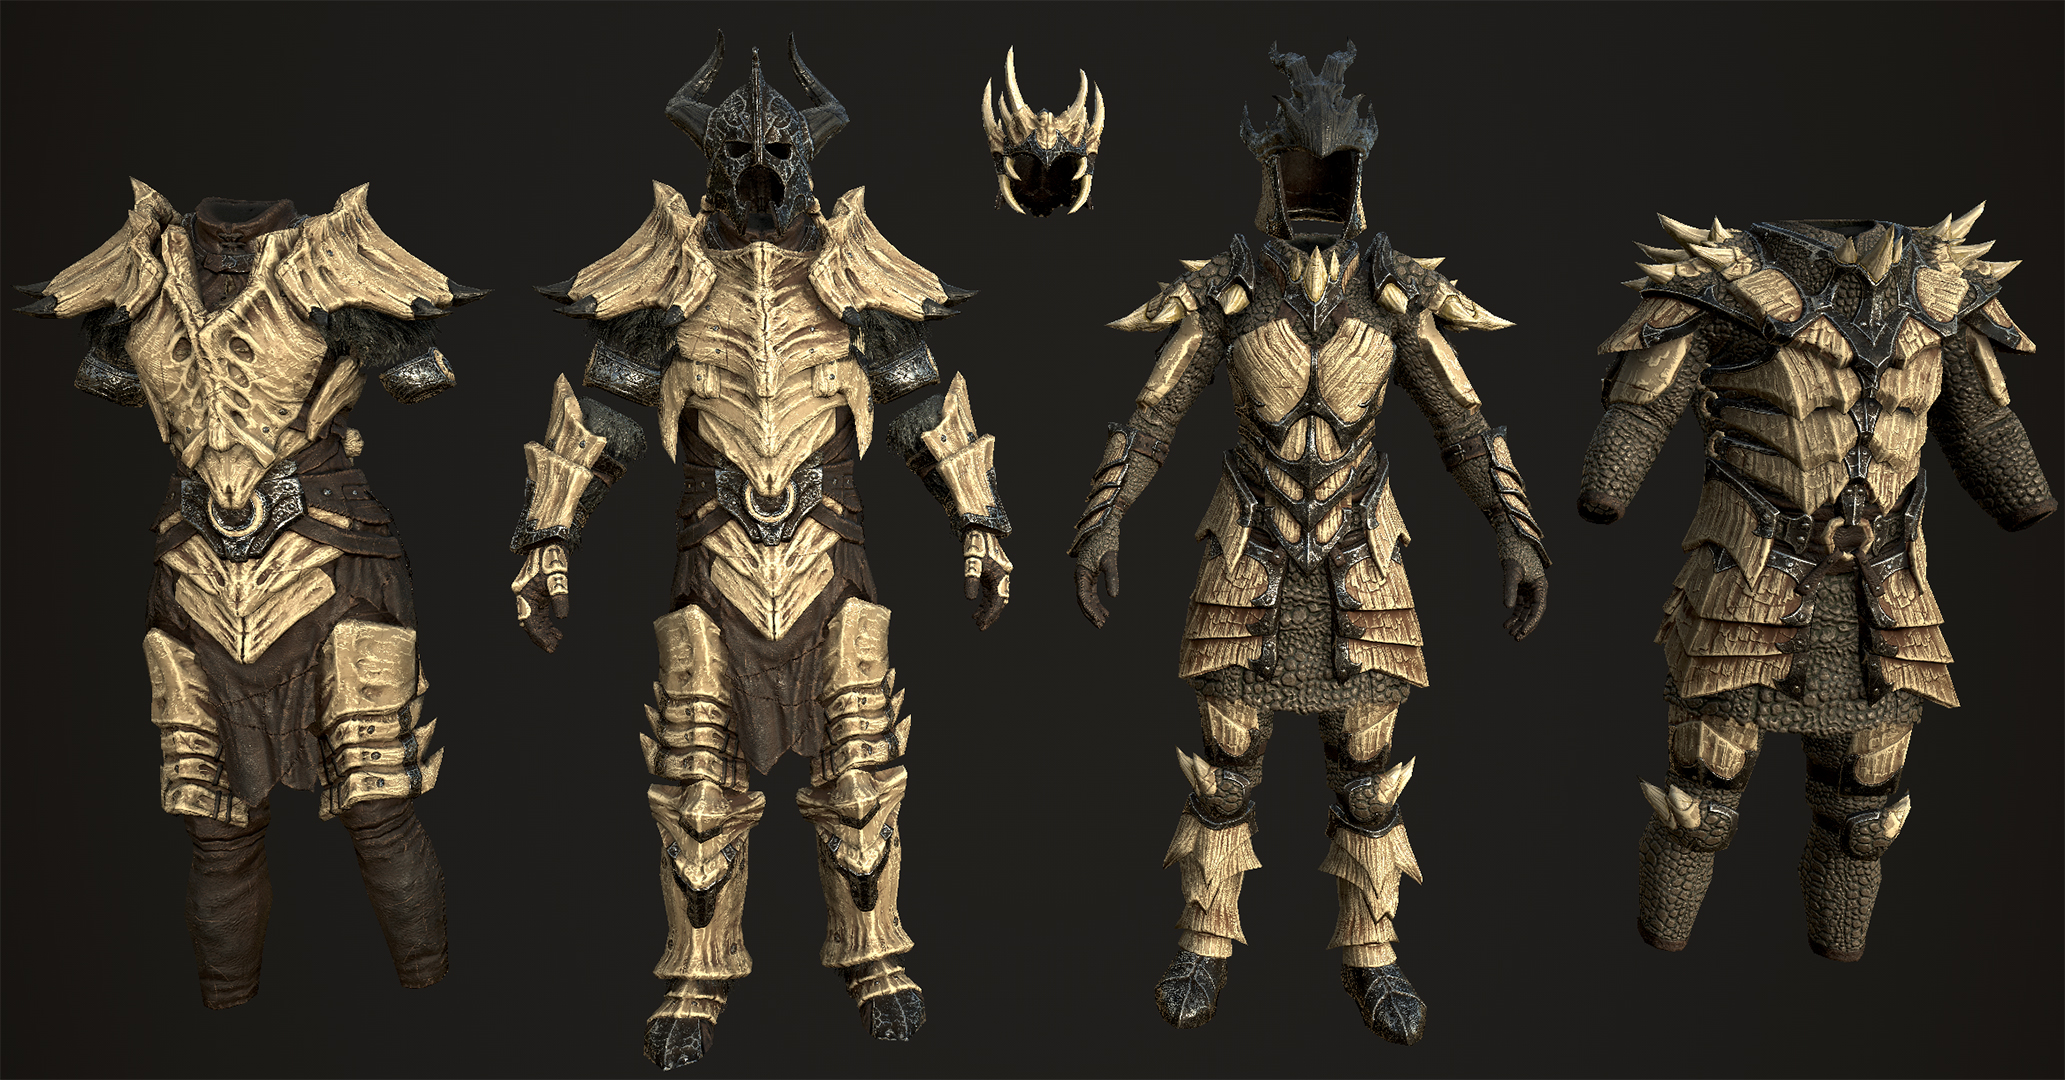 Frankly Hd Dragonbone And Dragonscale Armor And Weapons At Skyrim Nexus Mods And Community Dragonplate armor is a heavy armor set found in the elder scrolls v: armor and weapons at skyrim nexus